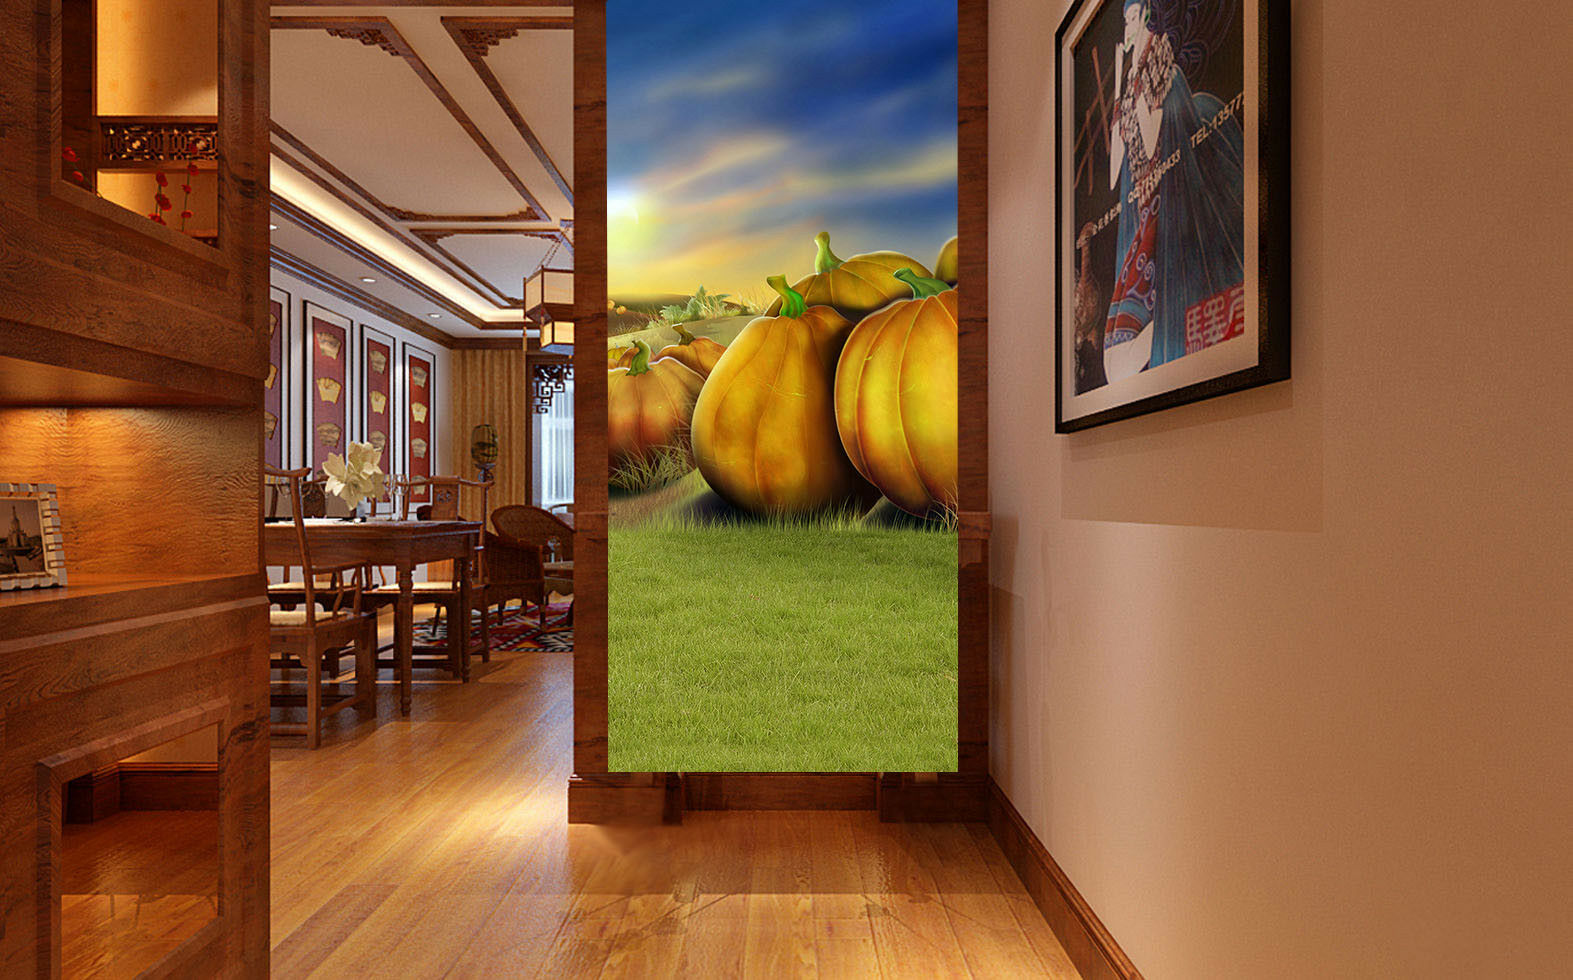 3D Halloween Pumpkin 42 Wall Paper Wall Print Decal Wall Deco Indoor Mural Carly